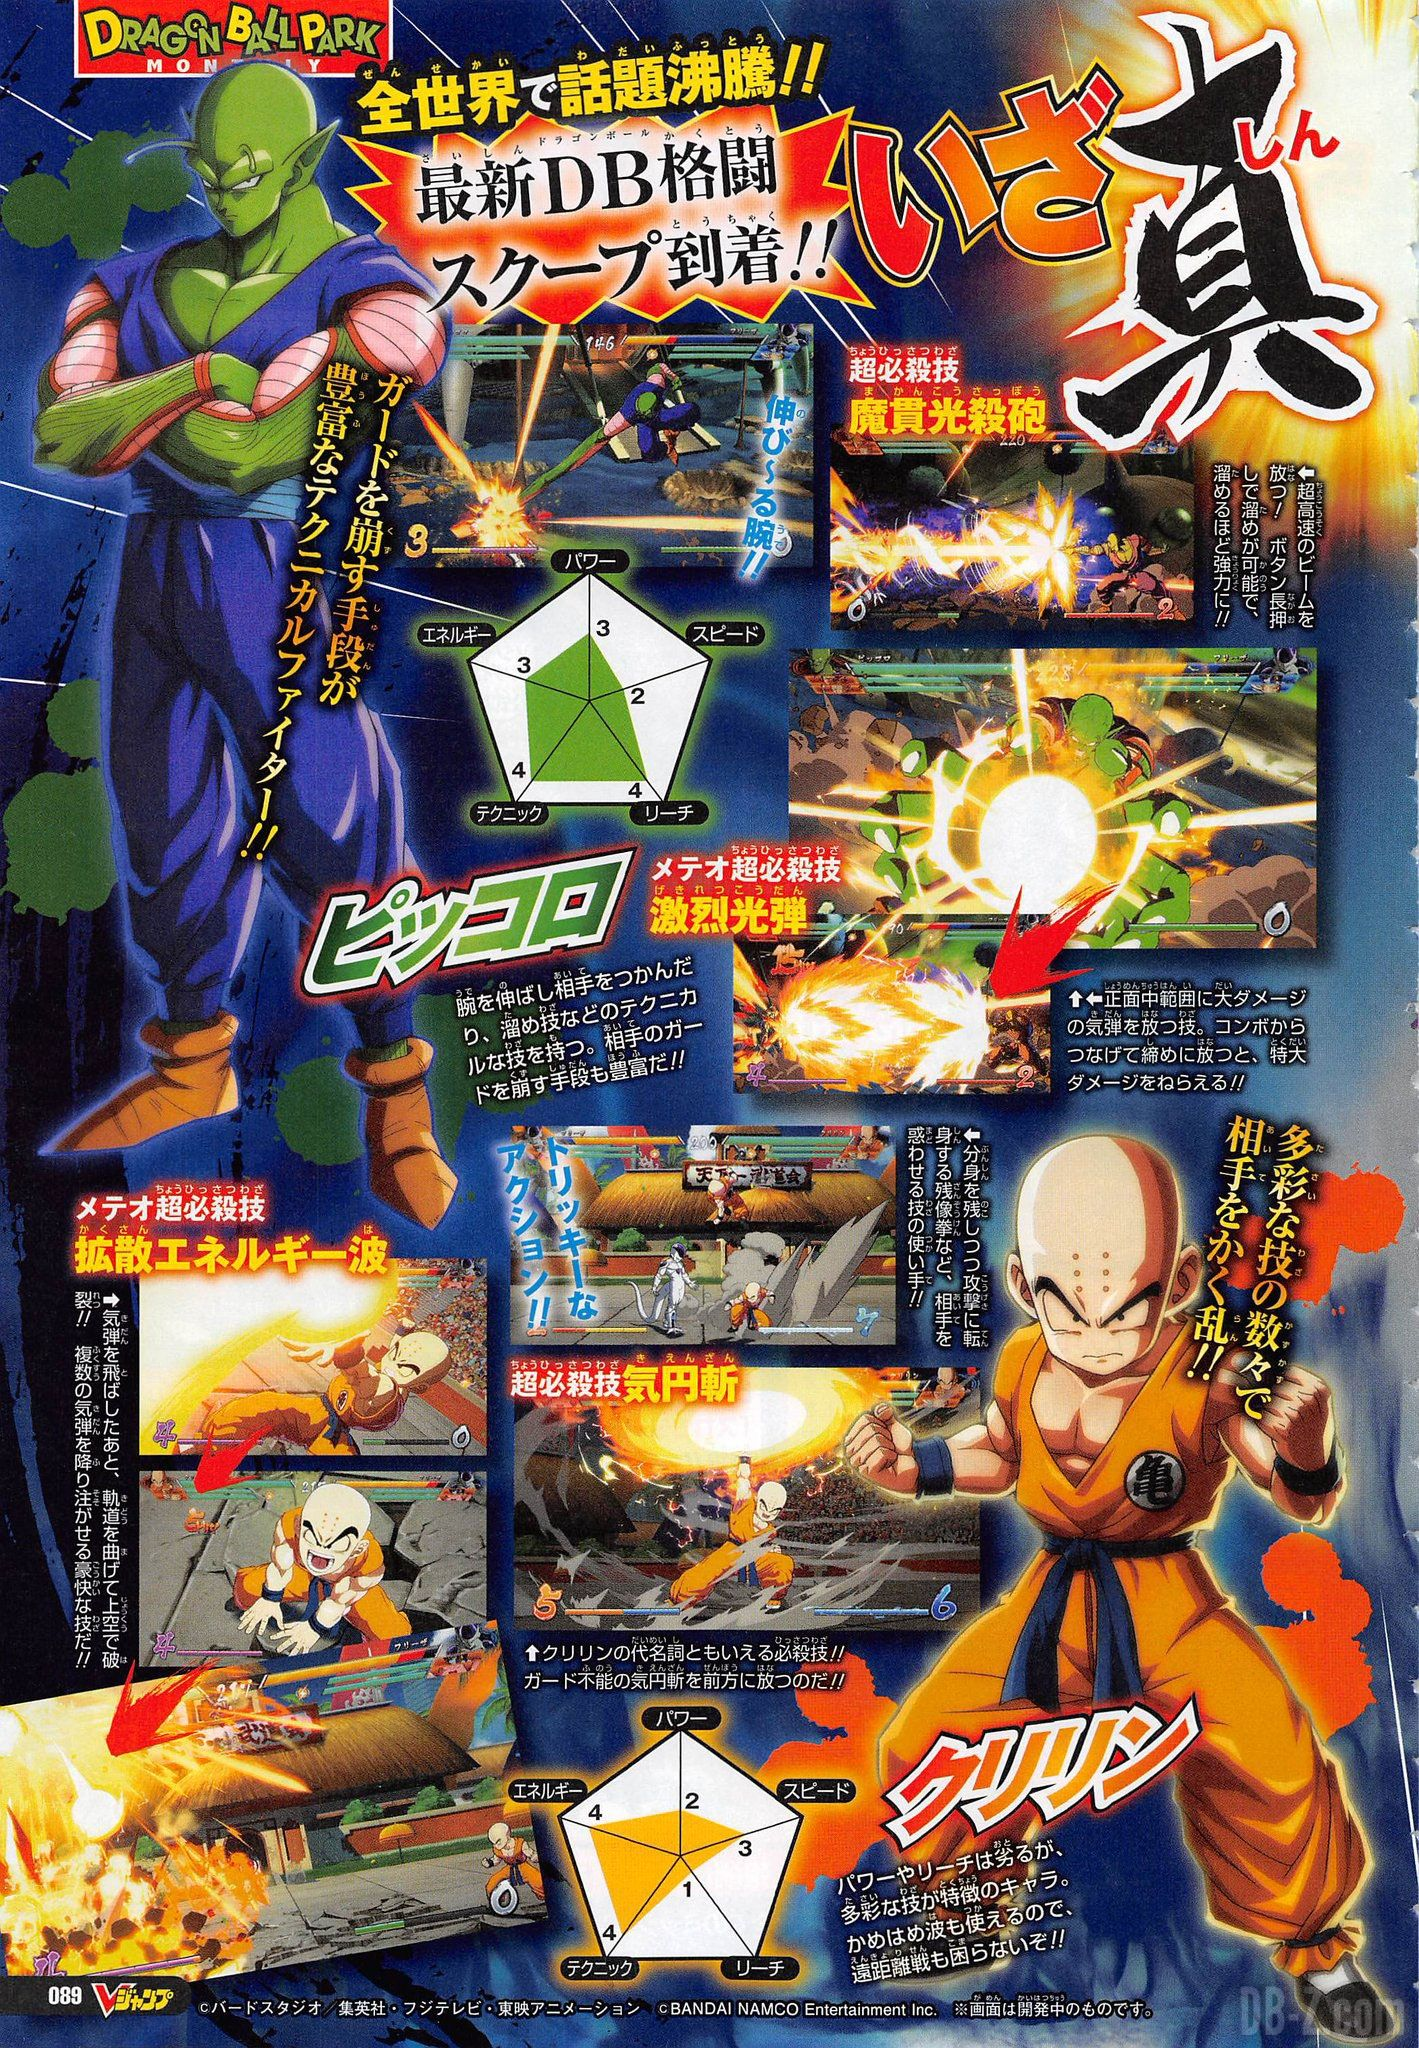 Dragonball Fighter Z Dragon Ball Anime Fighting Games Krillin